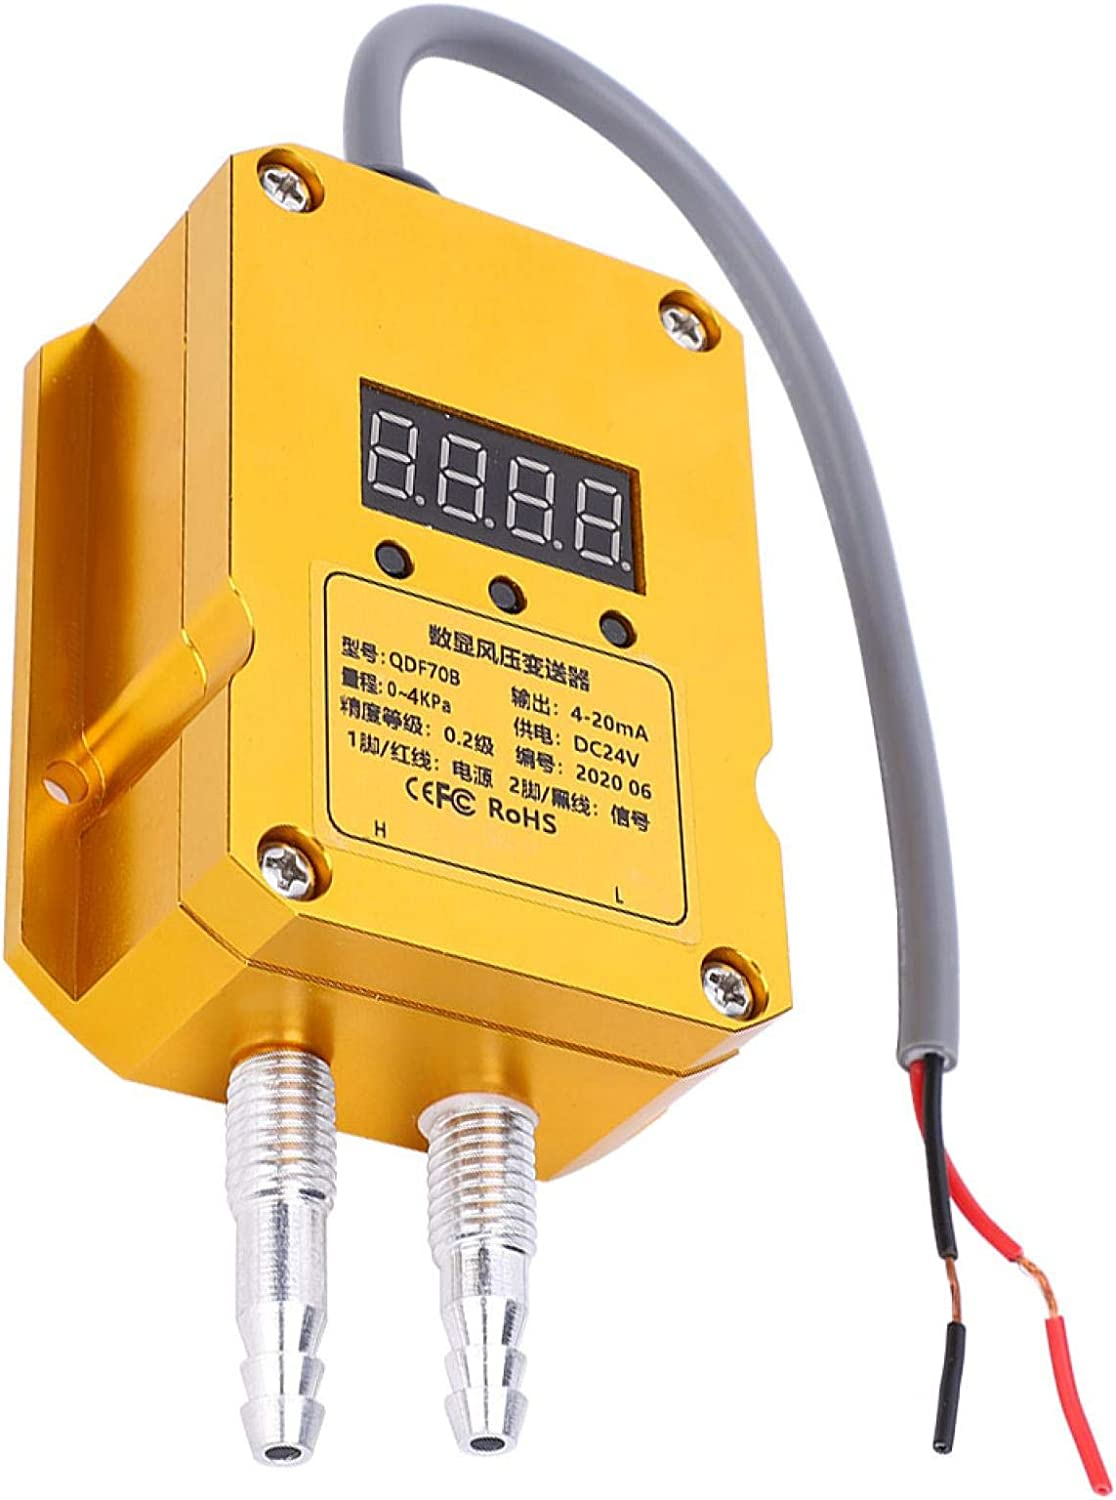 0.4Kpa Stable Anti‑Interference Durable Digital Display Transmitter For Boiler Air Supply Coal Industry Down Ventilation Pressure Process Wind Pressure Transmitter